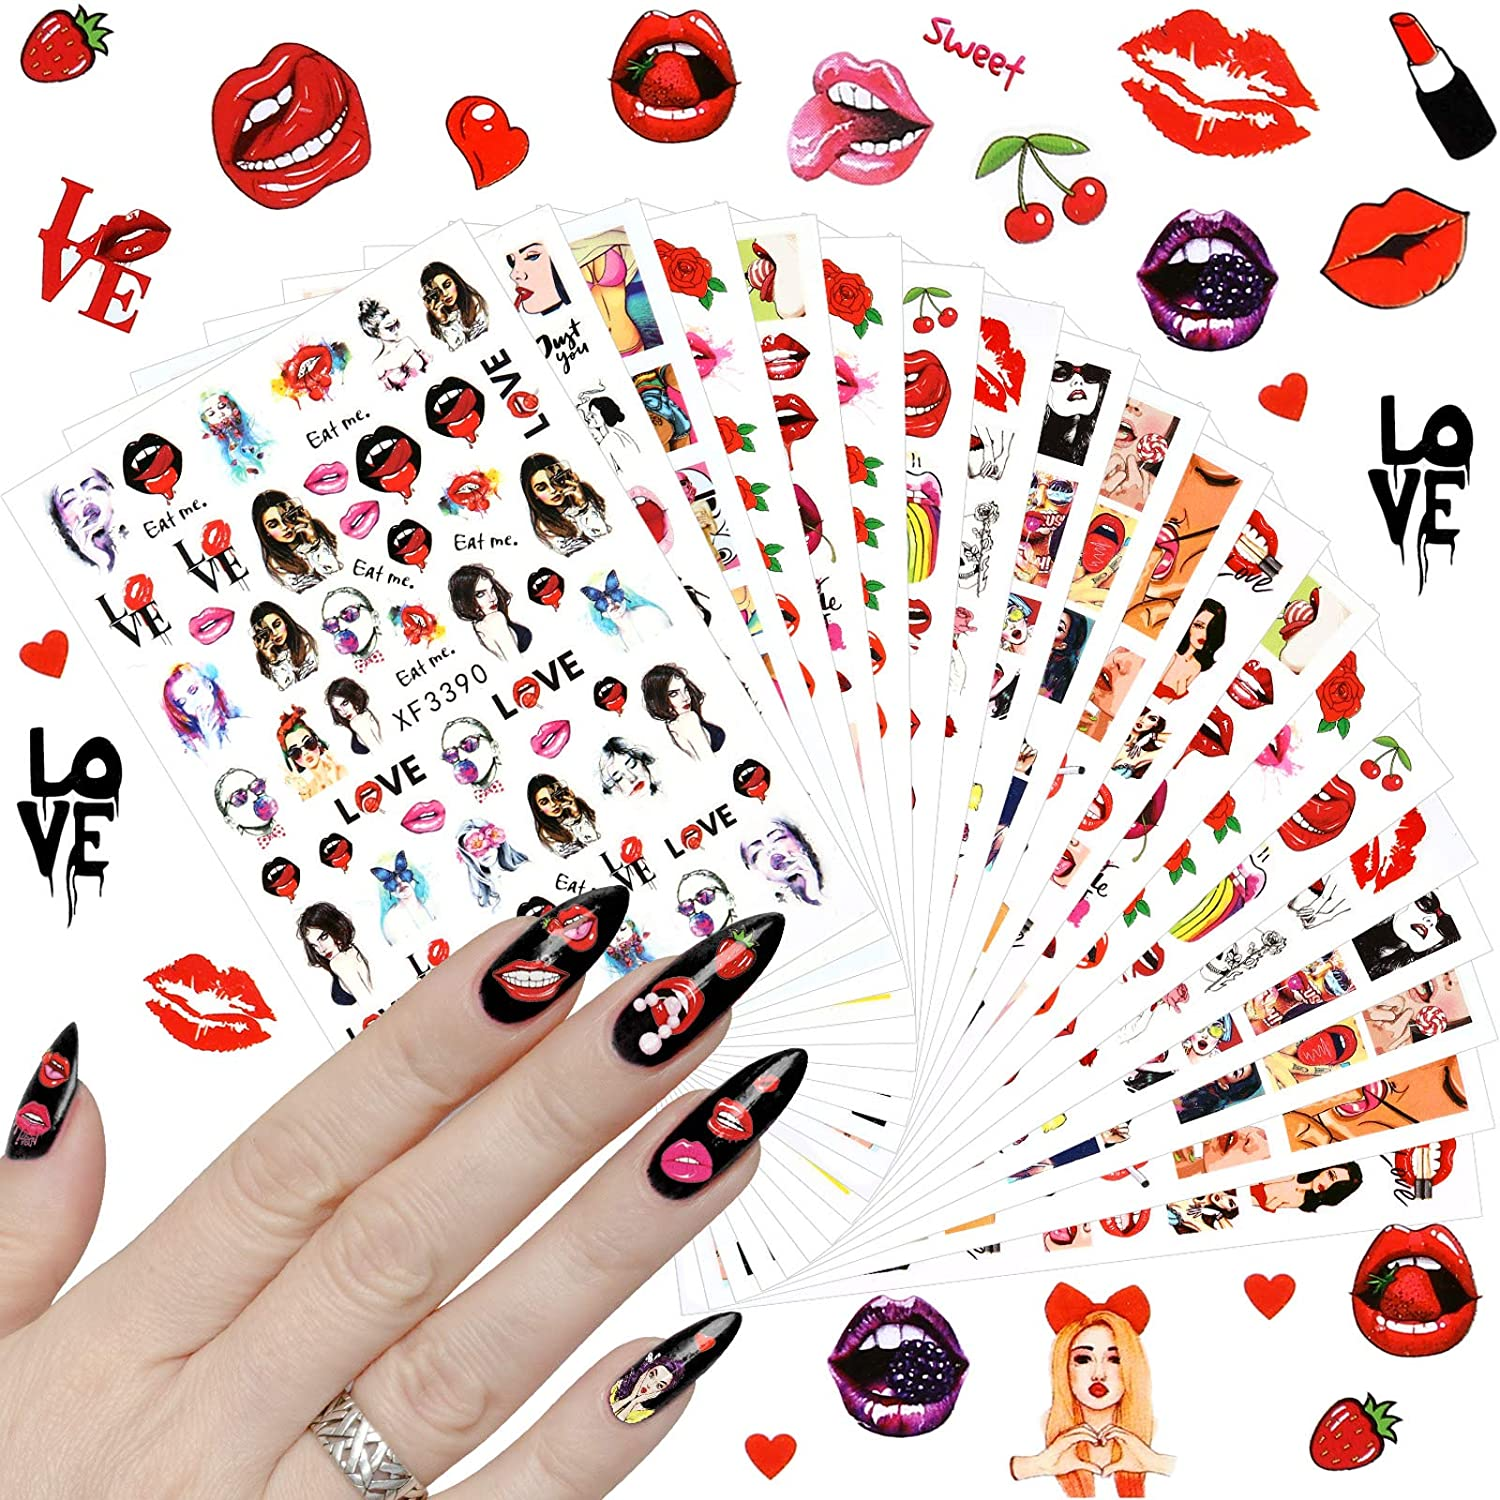 24 Sheets Lips Nail Art Stickers for Women Lips Cool Girls Nail Decals, Lips Beauty Different Patterns Decals Self-adhesive Nail Art Decals Stickers Girl Love Kiss Pattern Nail Art Supplies Decoration